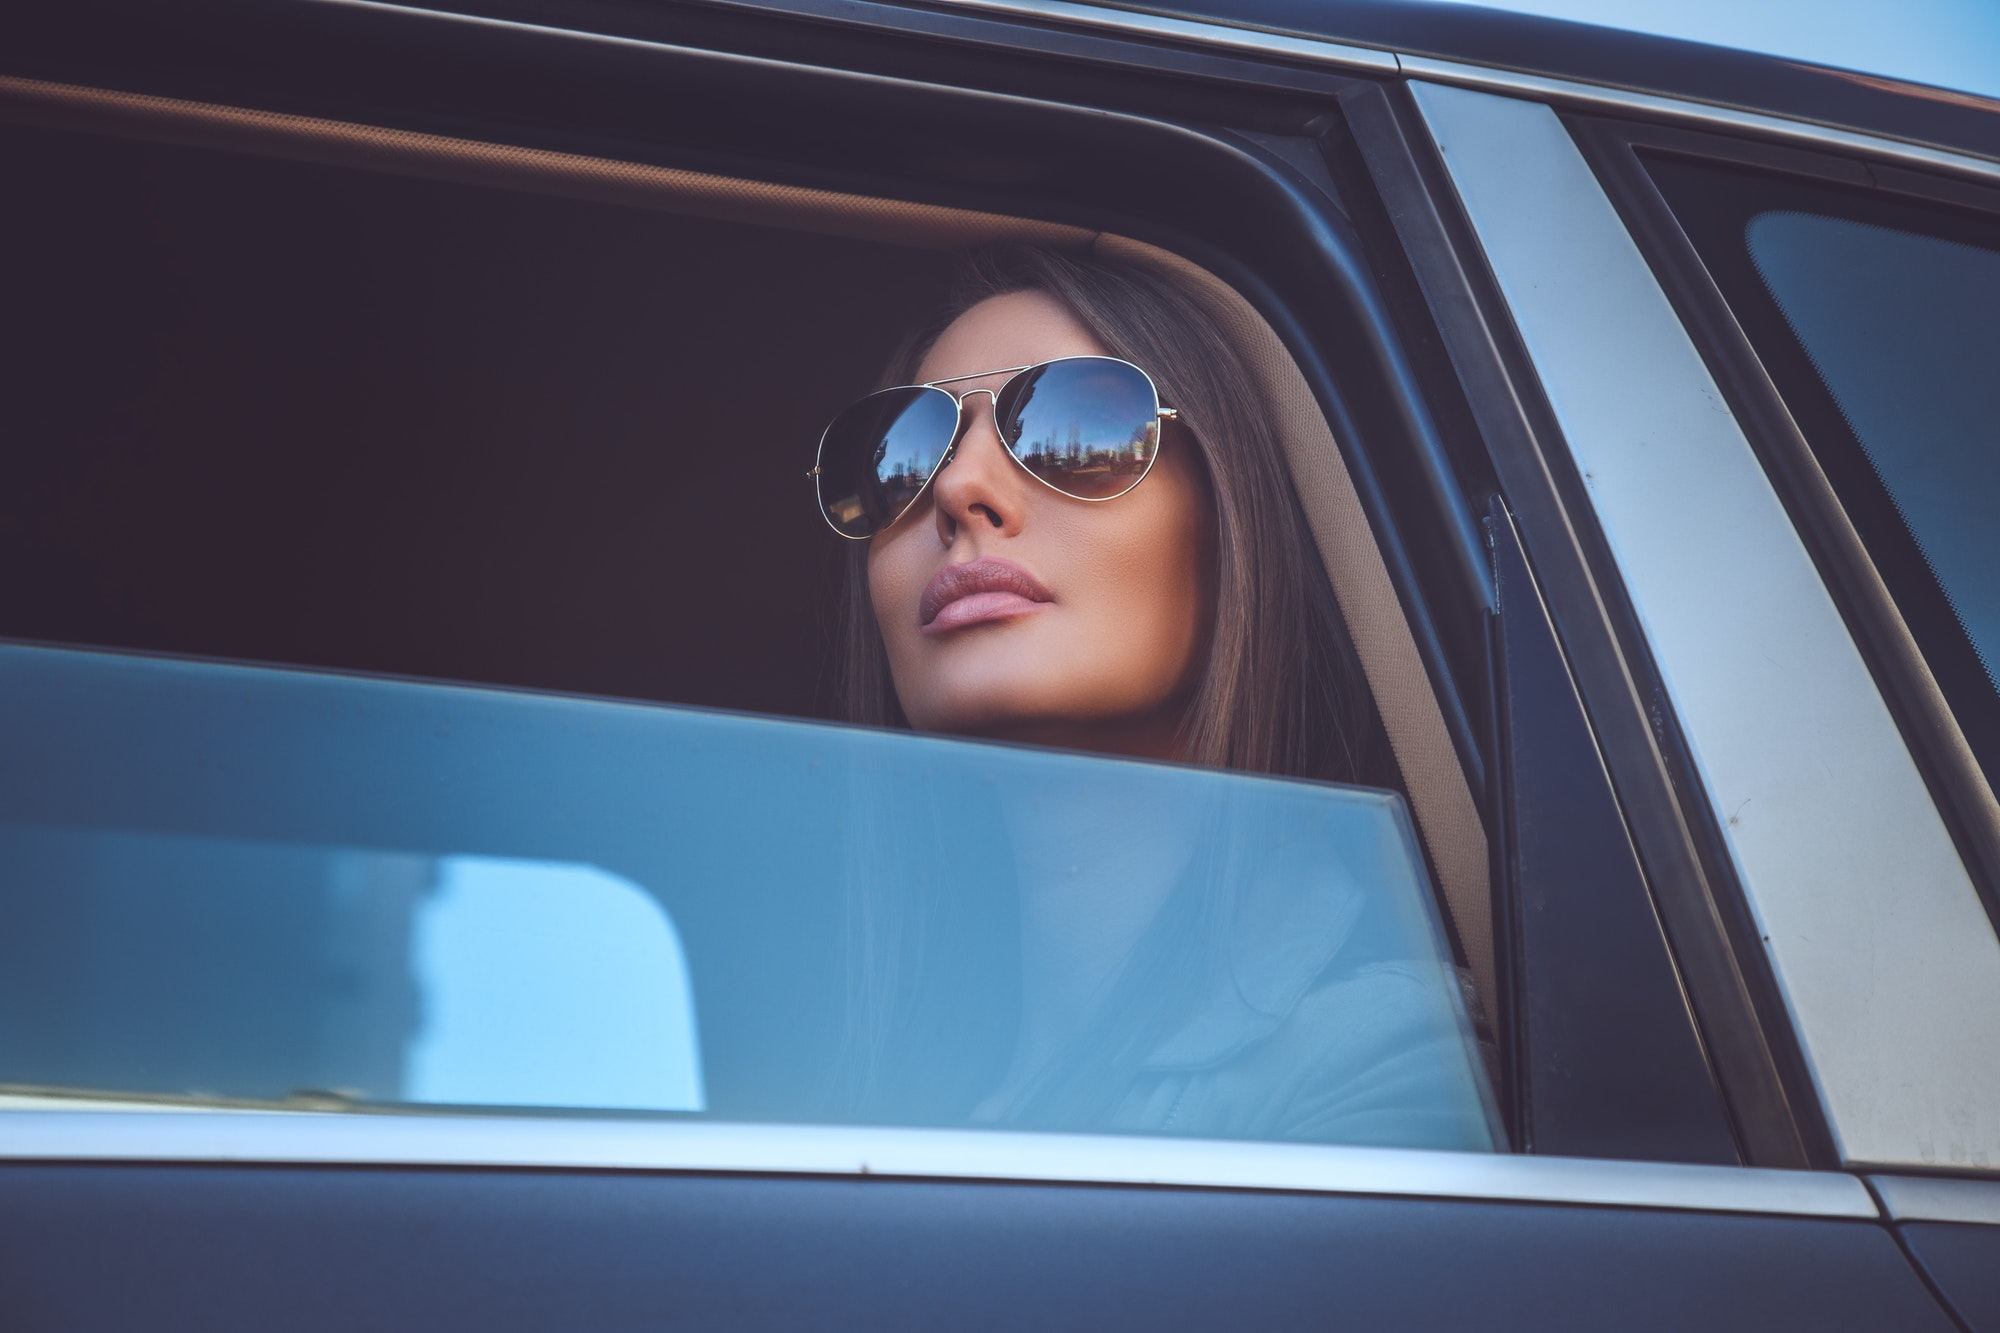 A woman in sunglasses looking outside